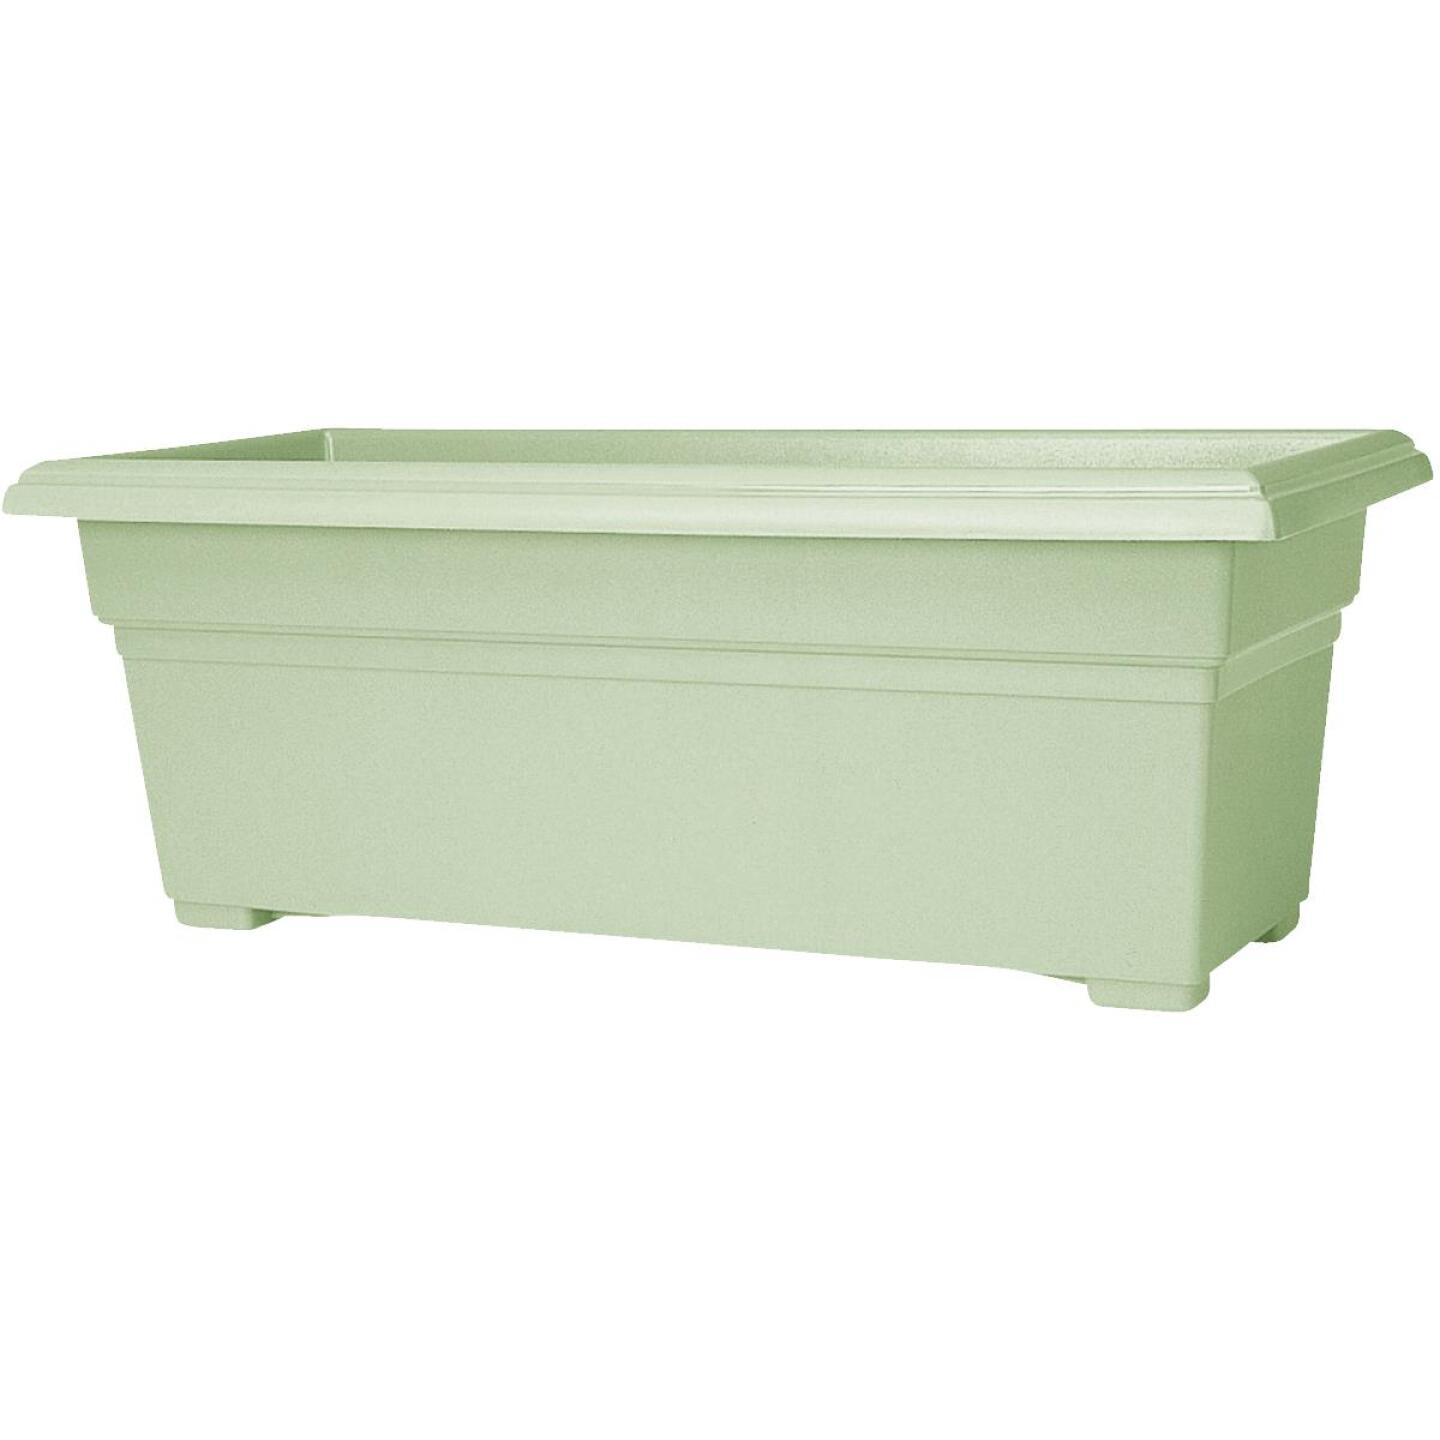 Novelty Countryside 30 In. Plastic Sage Flower Box Planter Image 1